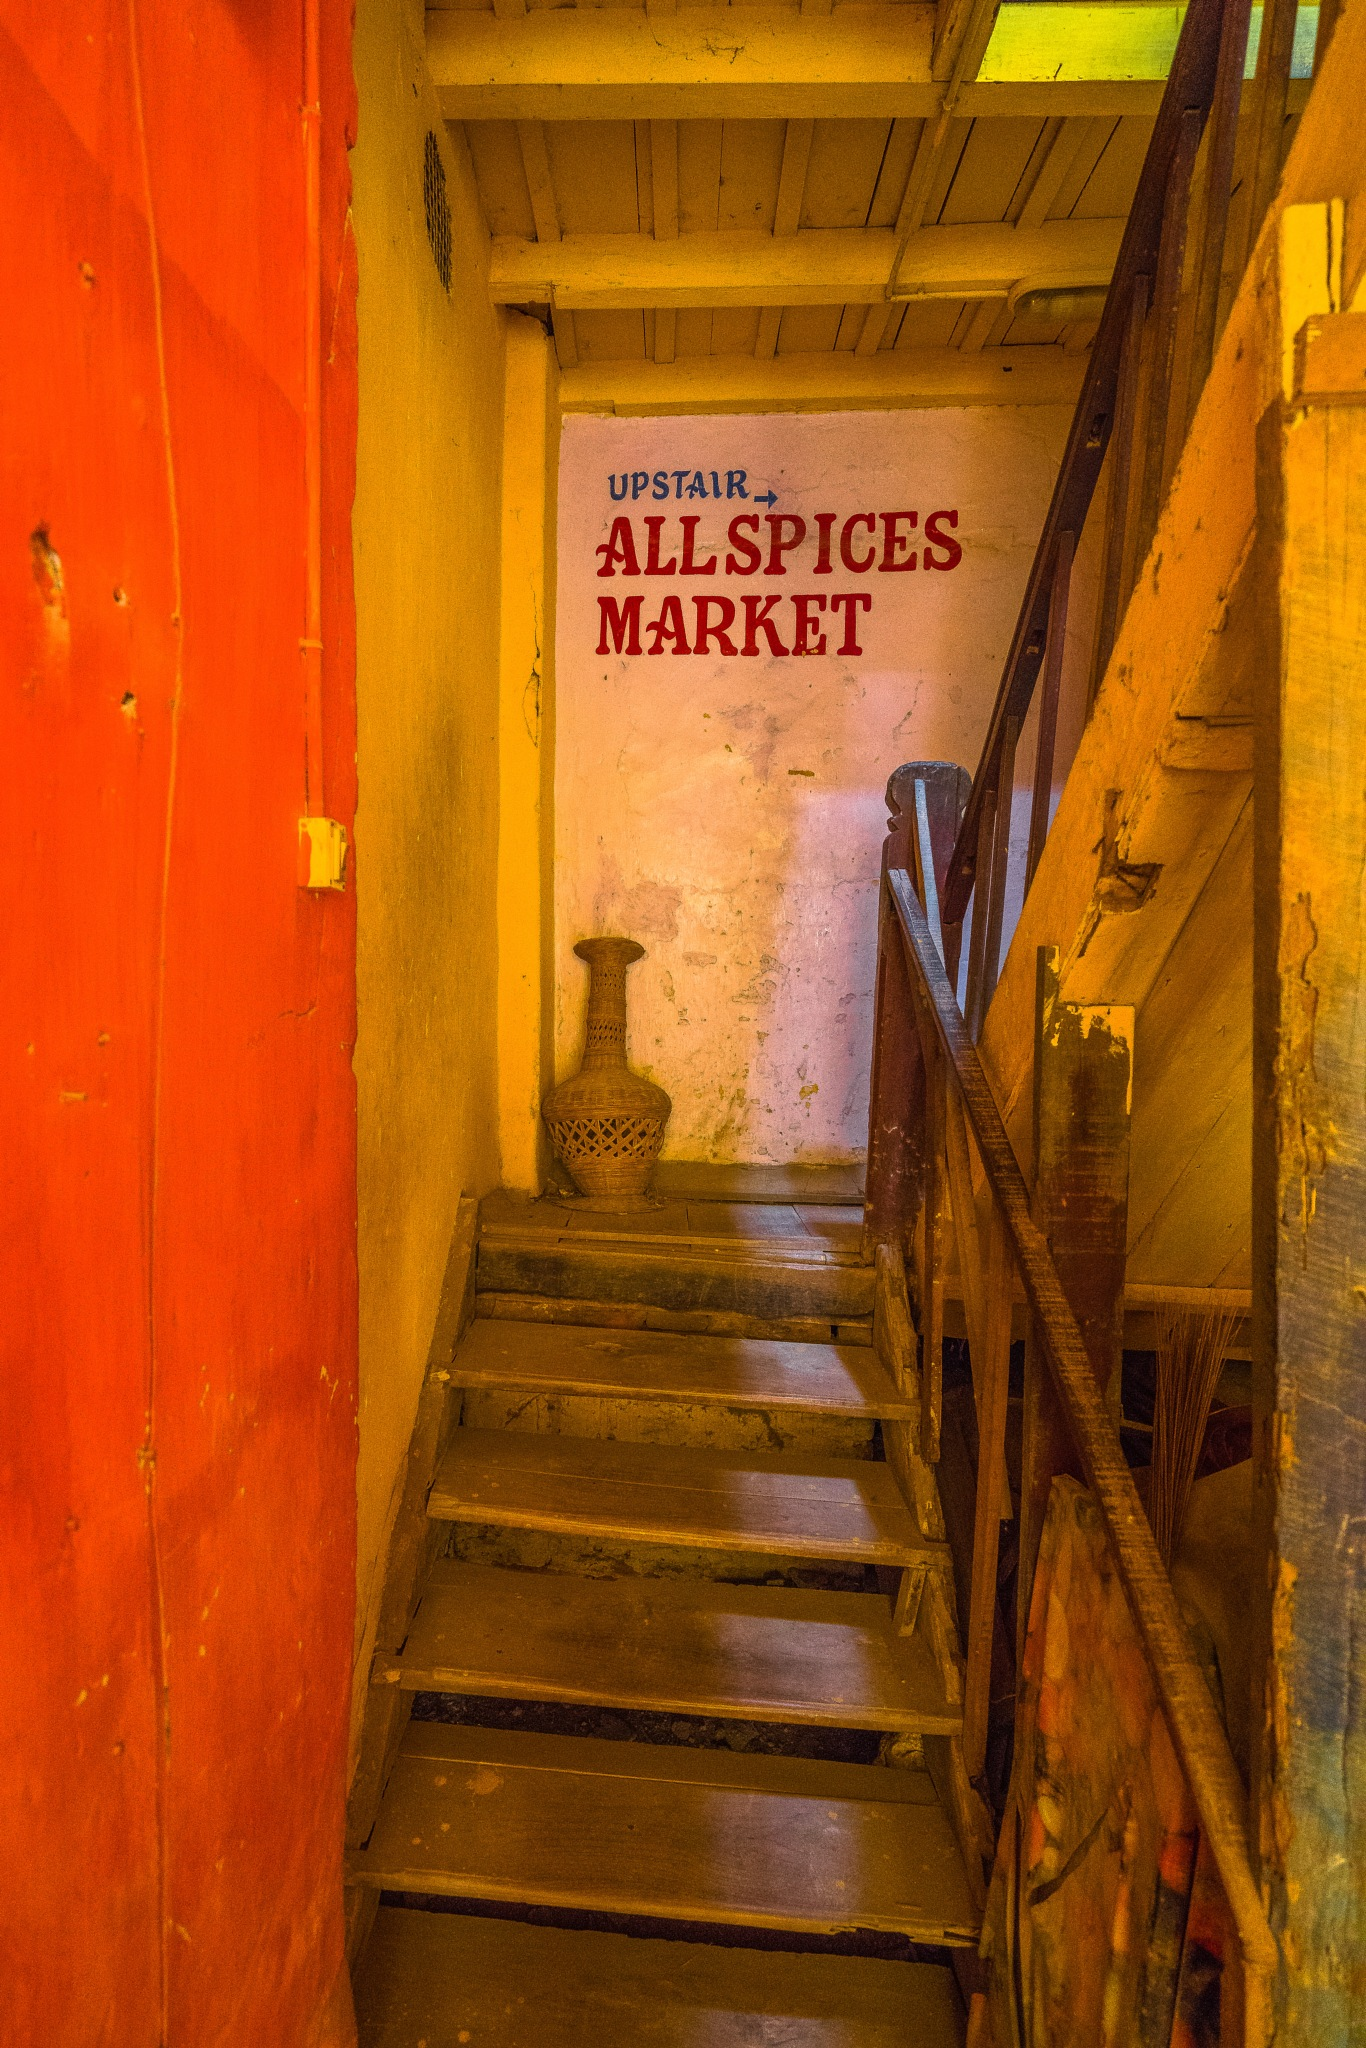 The spice market is upstairs by BernArt Photography